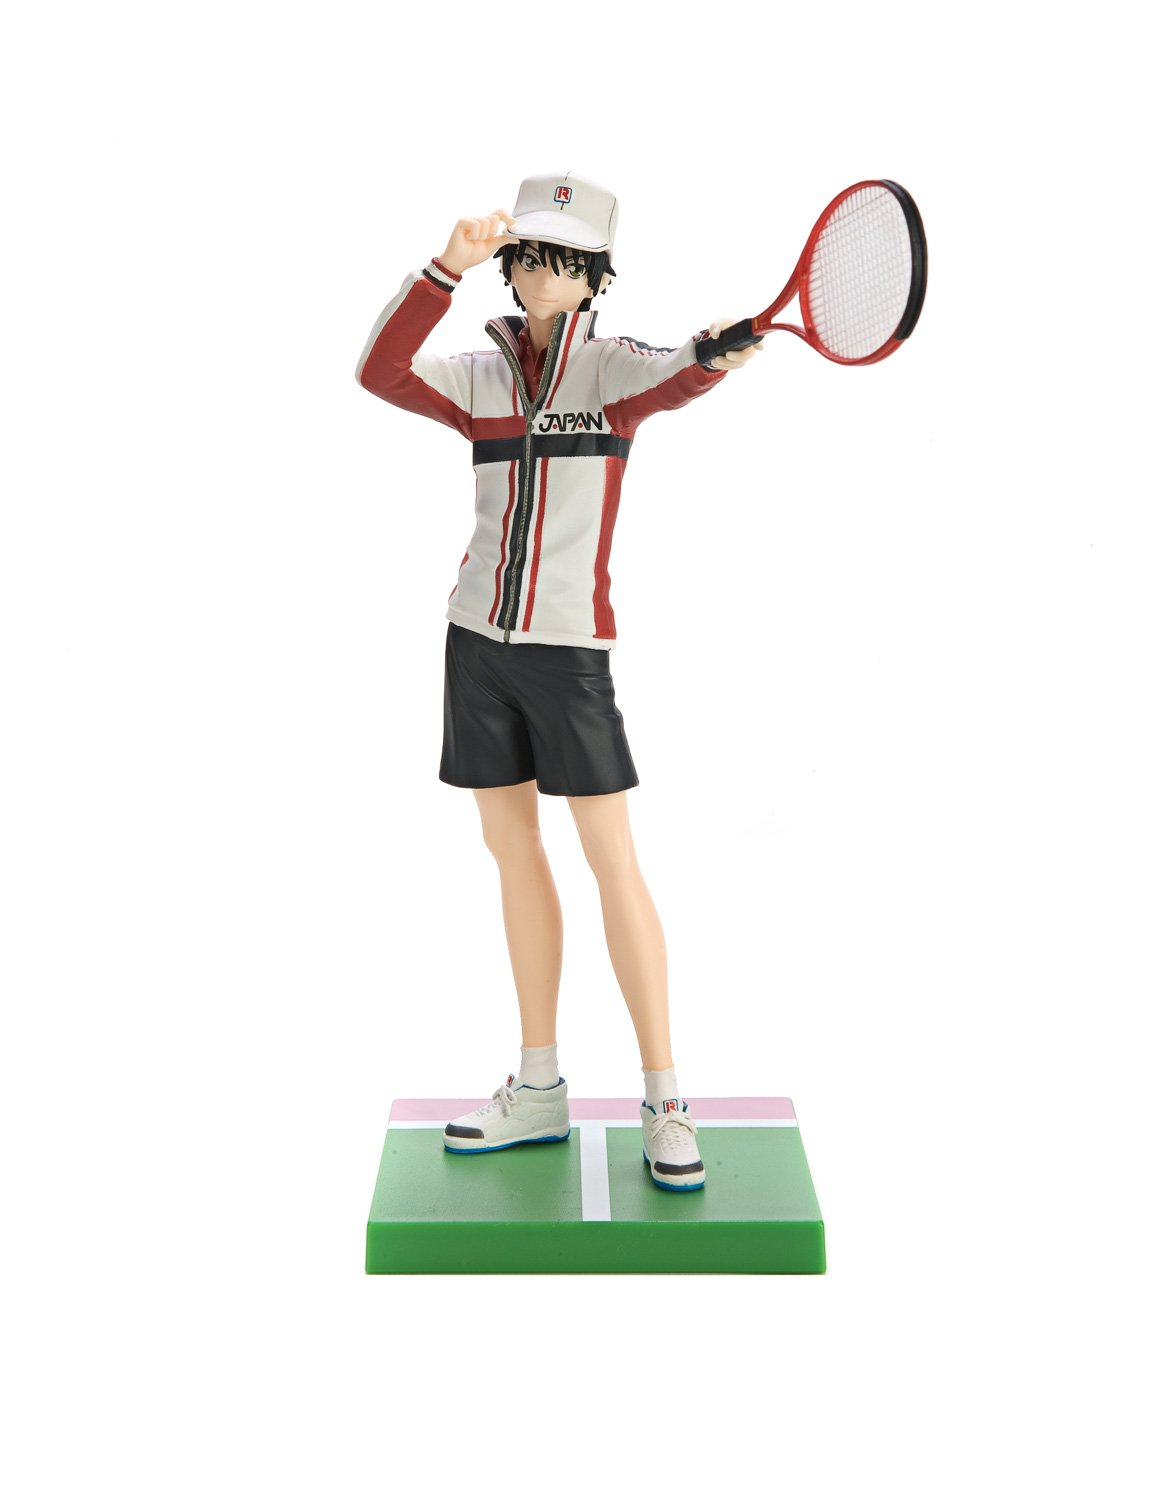 echizen.mine.nu Amazon.com: Prince of Tennis Echizen Ryoma PM Sega PVC Figure: Toys & Games